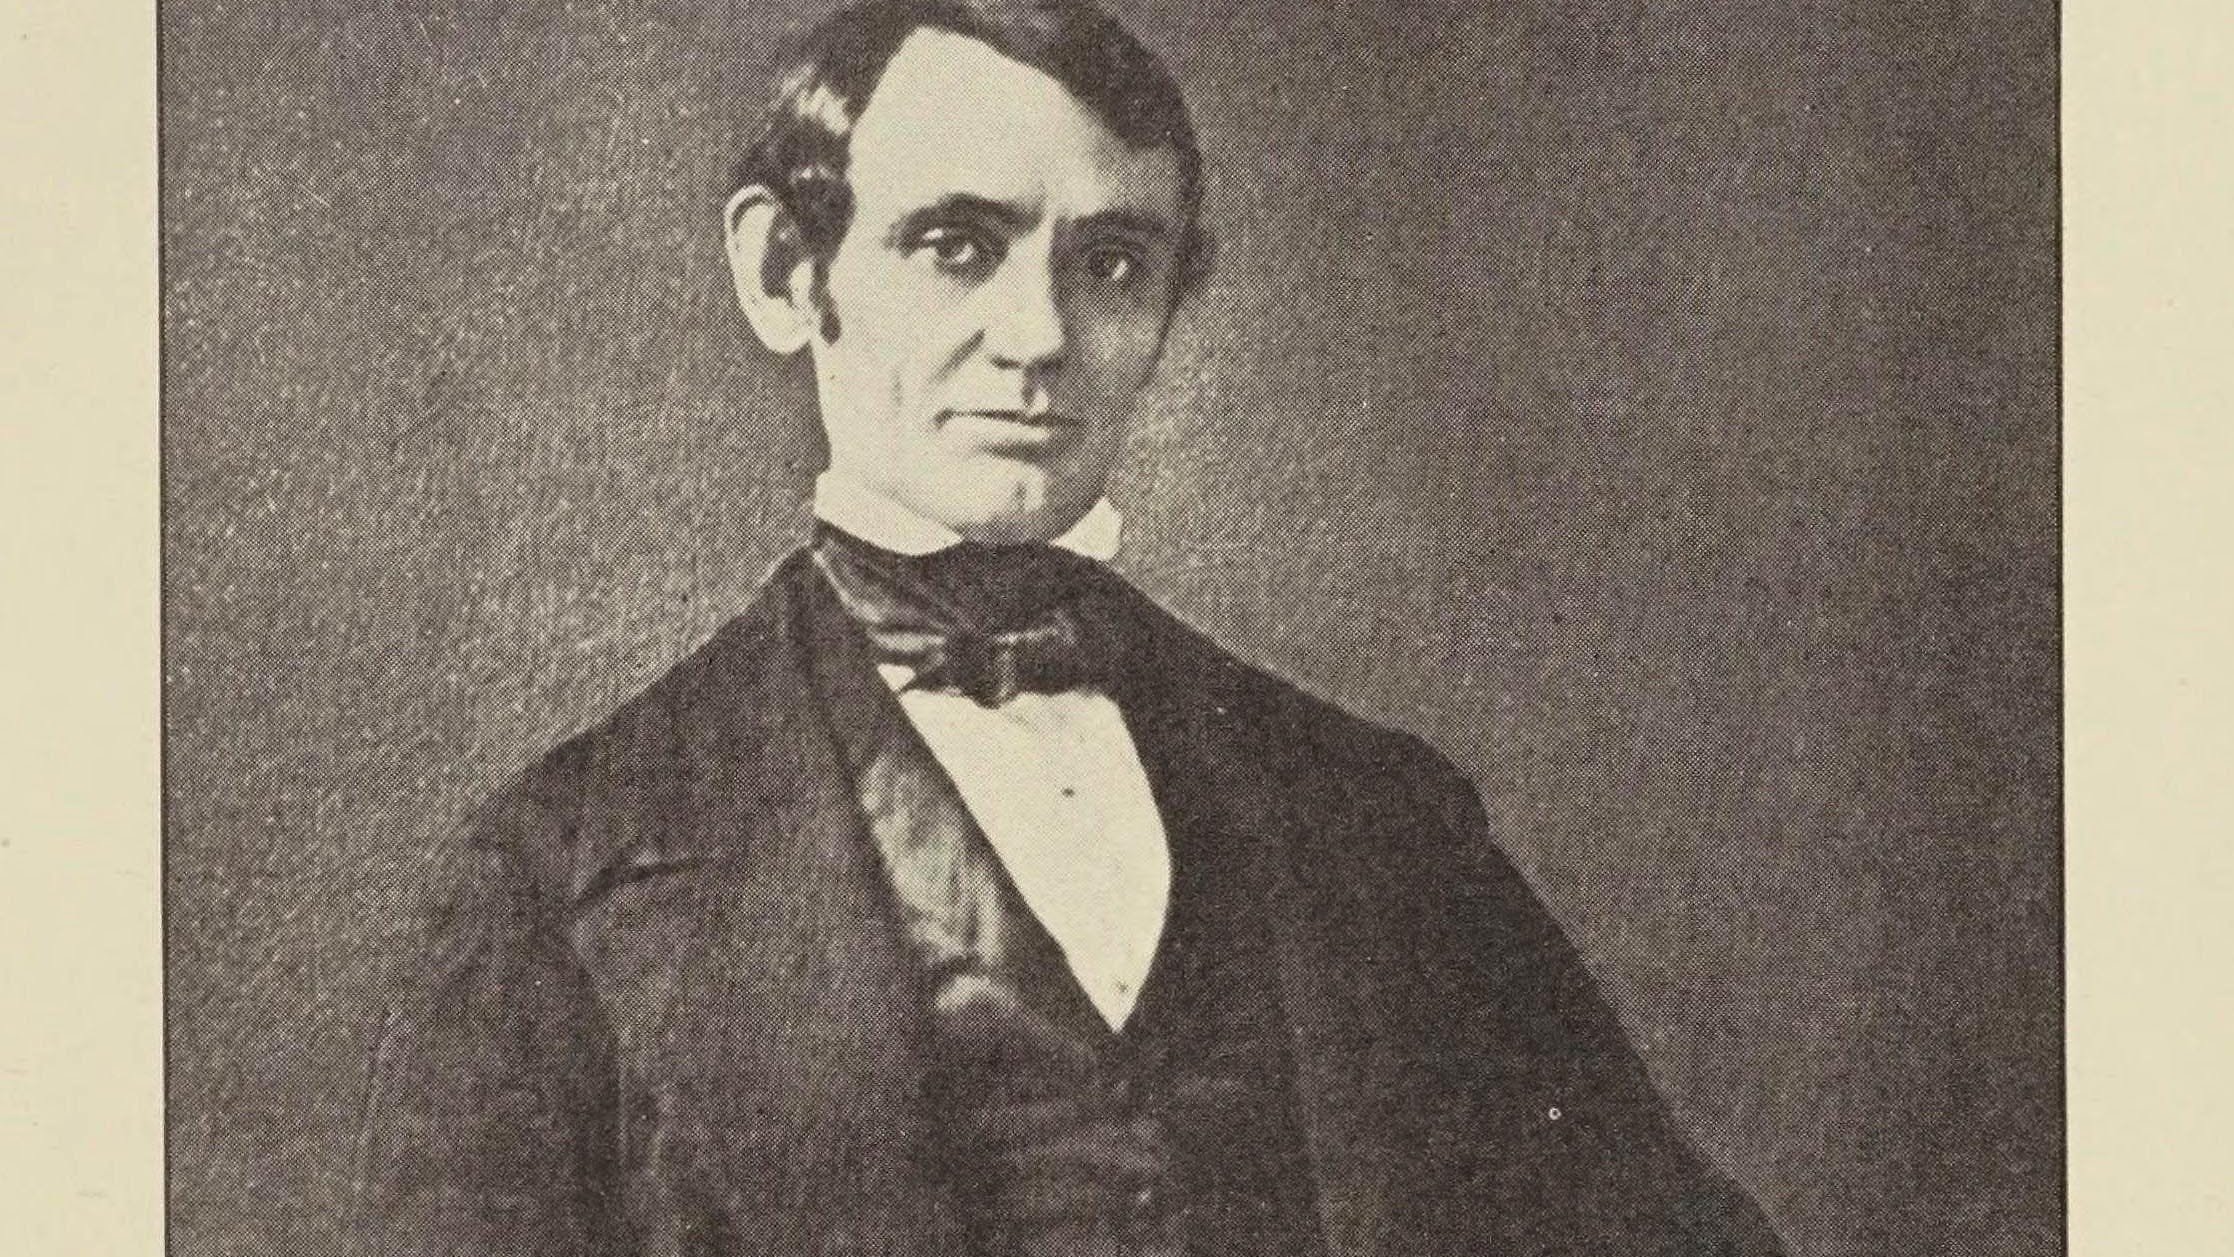 The Black Hawk War, a book found in the Library of Congress catalogue, includes a portrait of Capt. Abraham Lincoln.